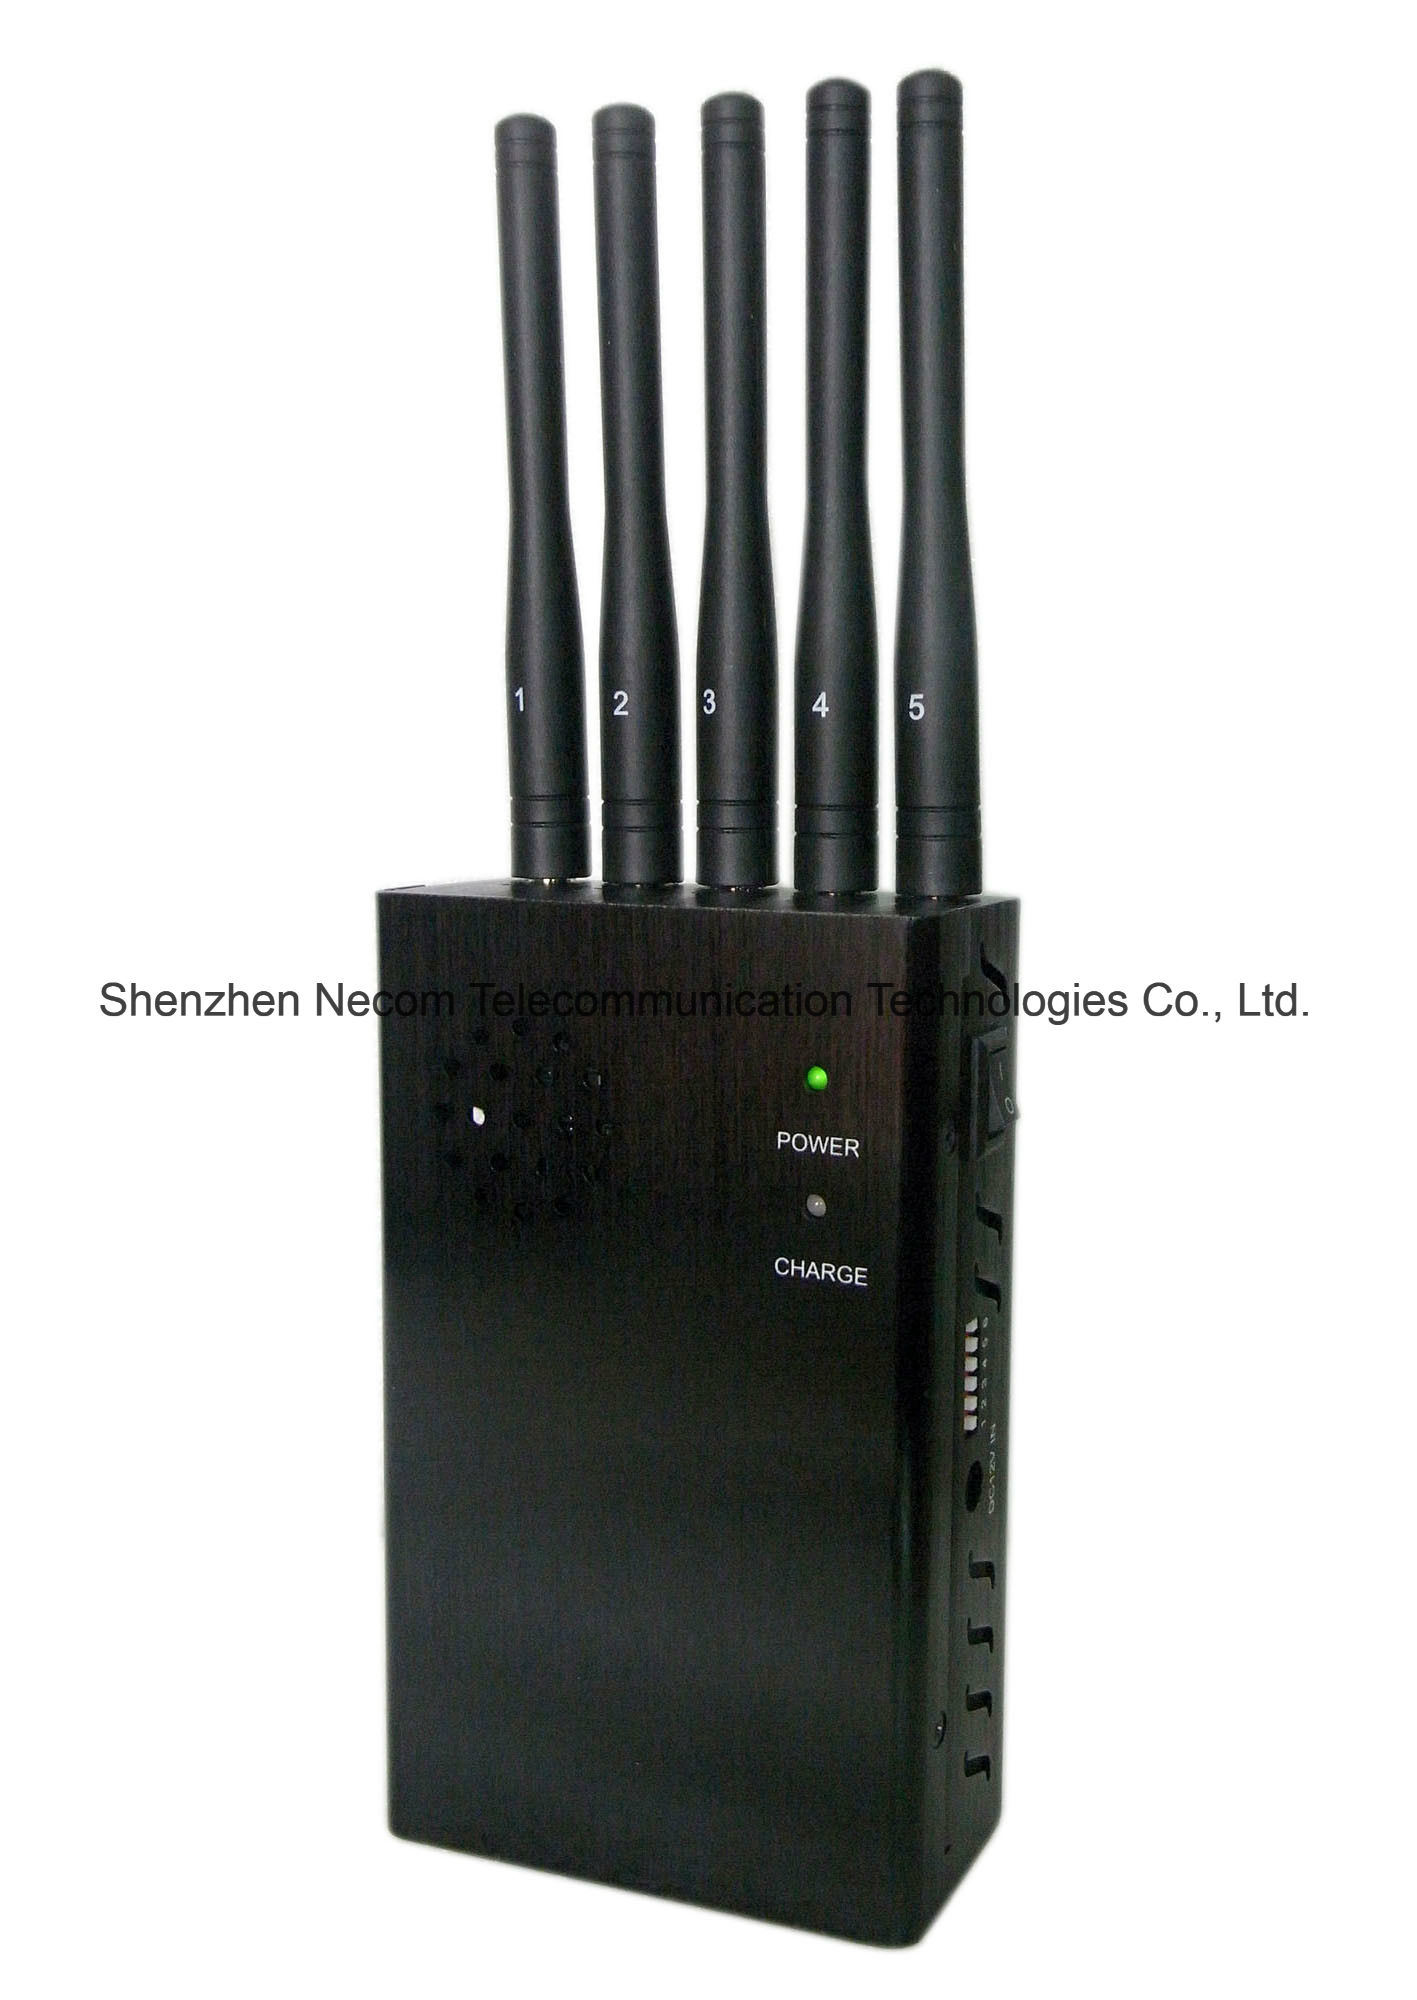 phone network jammer radio - China 5 Antenna Big Portable Cell Jammer, Portable GPS Jammer, Portable WiFi Jammer, Jamming 2g+3G+4G+Gpsl1 - China 5 Band Signal Blockers, Five Antennas Jammers